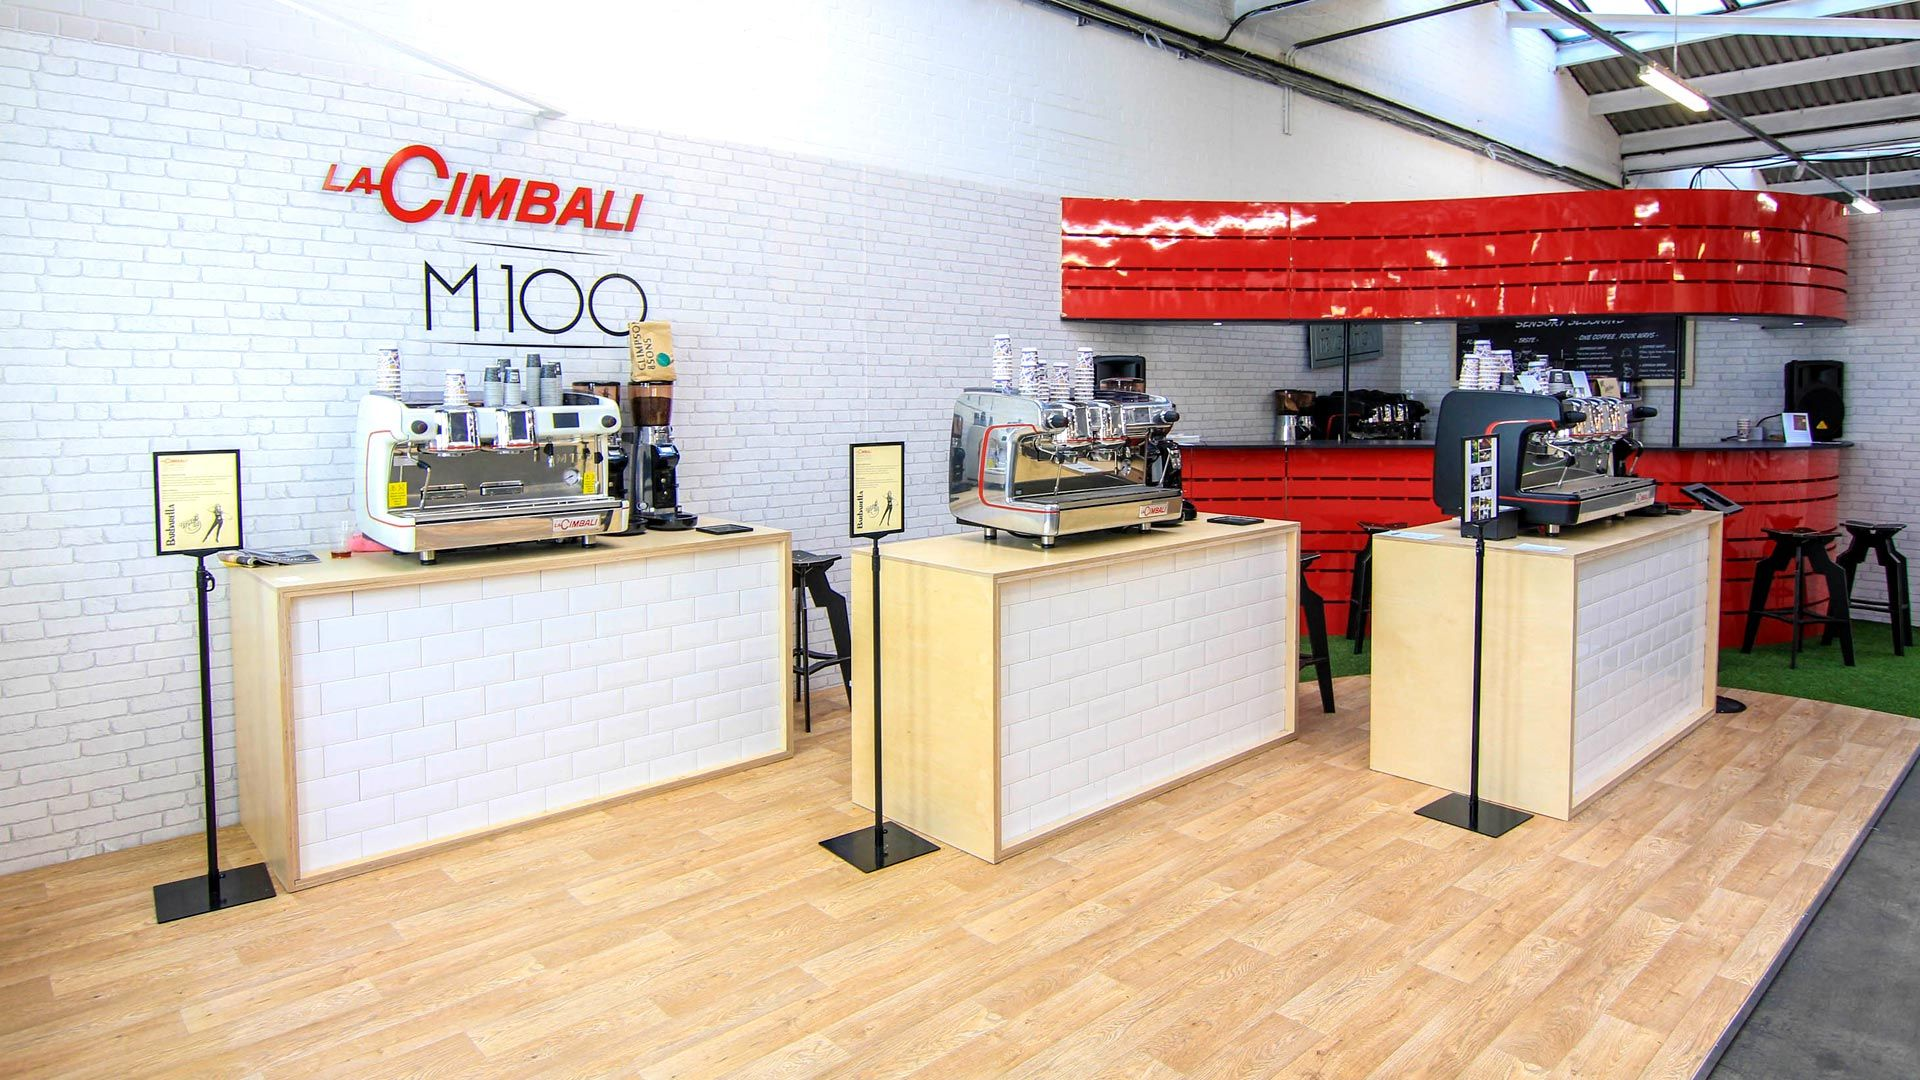 Exhibition Stand Coffee : La cimbali trade stand for london coffee festival by liqui